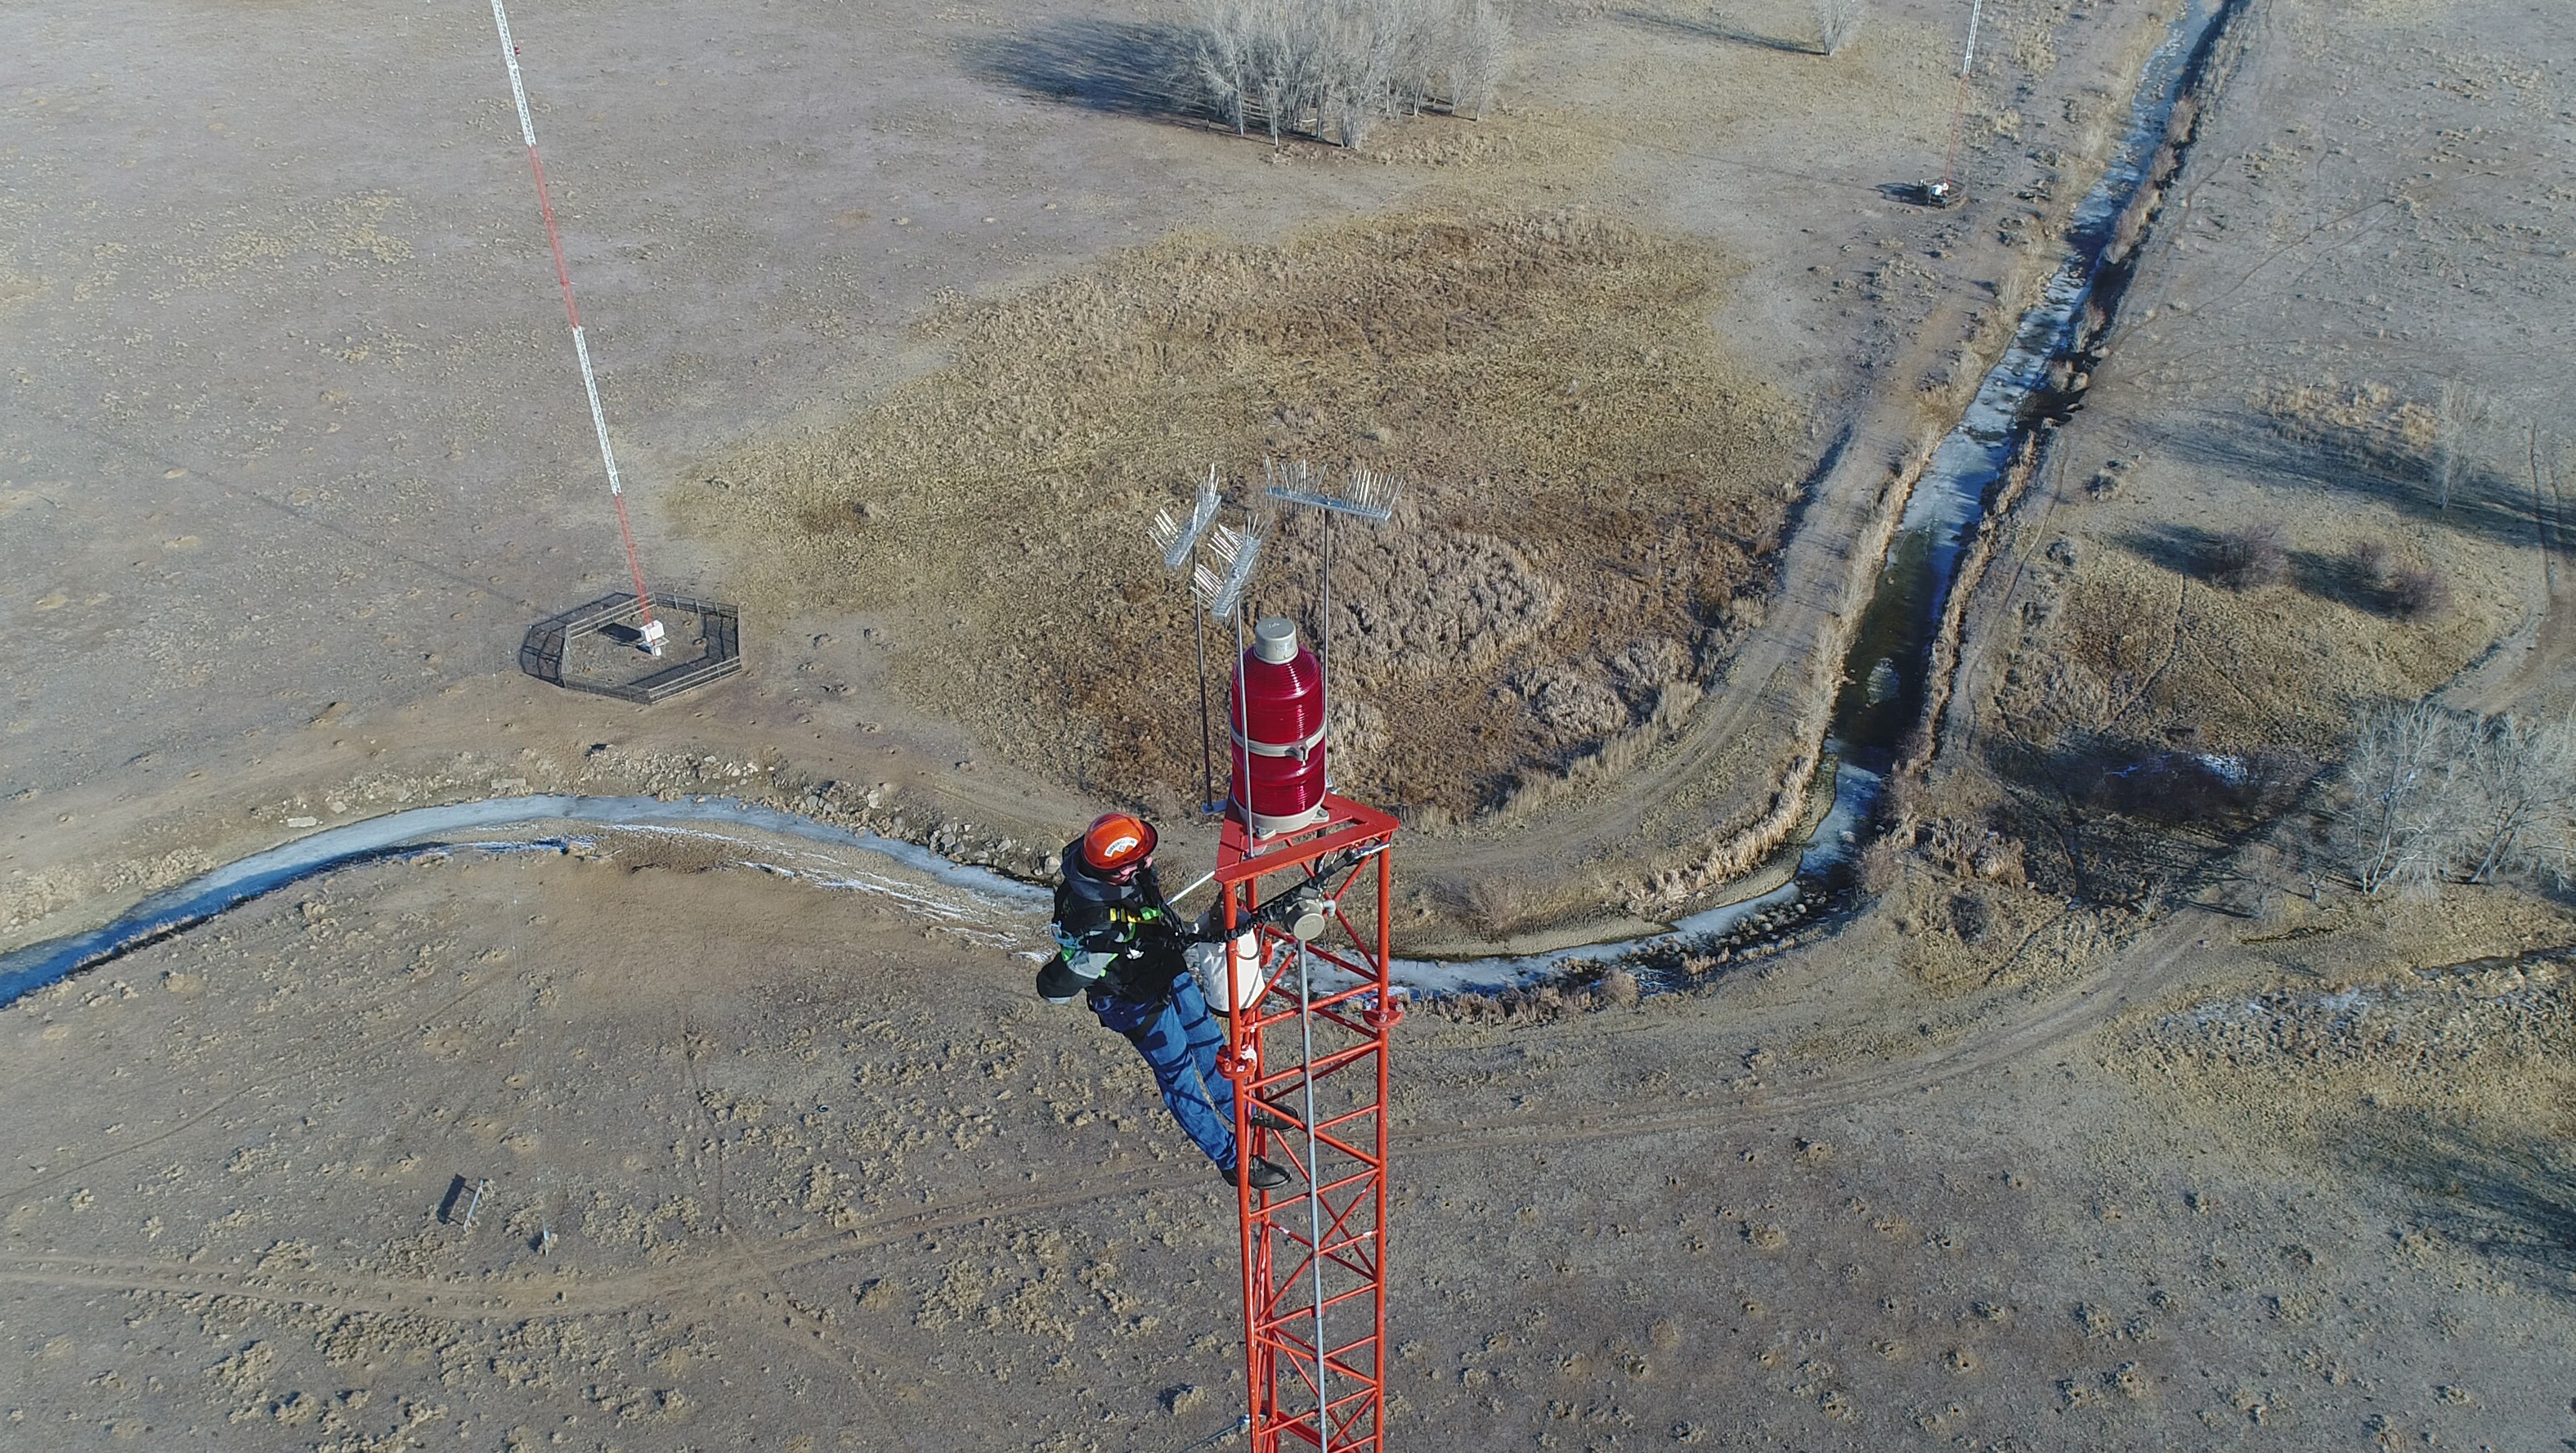 Cris Alexander of Crawford Broadcasting Co. captured this image of tower climber Derek Jackson at the top of a tower near Denver International Airport. Photo courtesy of Cris Alexander/Crawford Broadcasting Co.